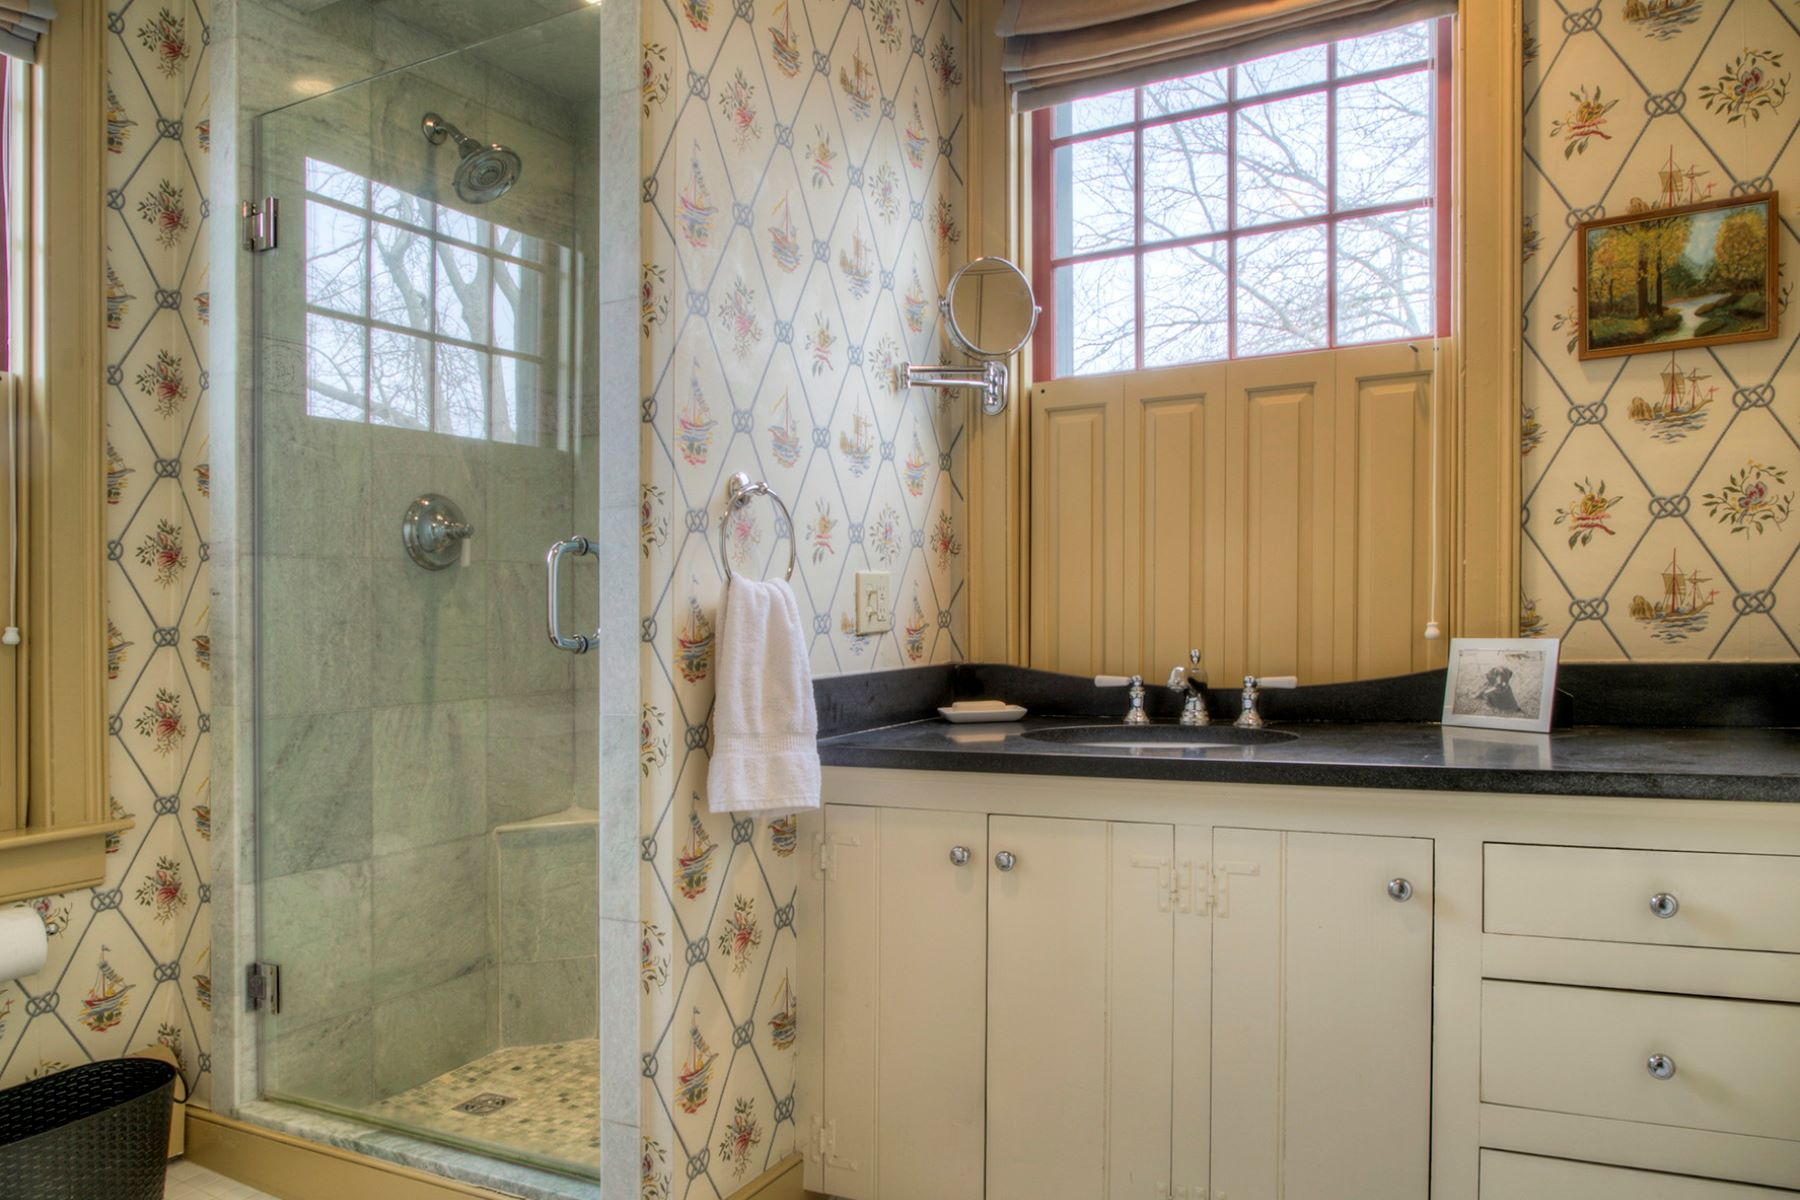 Additional photo for property listing at Classic Point Colonial 67 Bridge Street Newport, Rhode Island 02840 United States